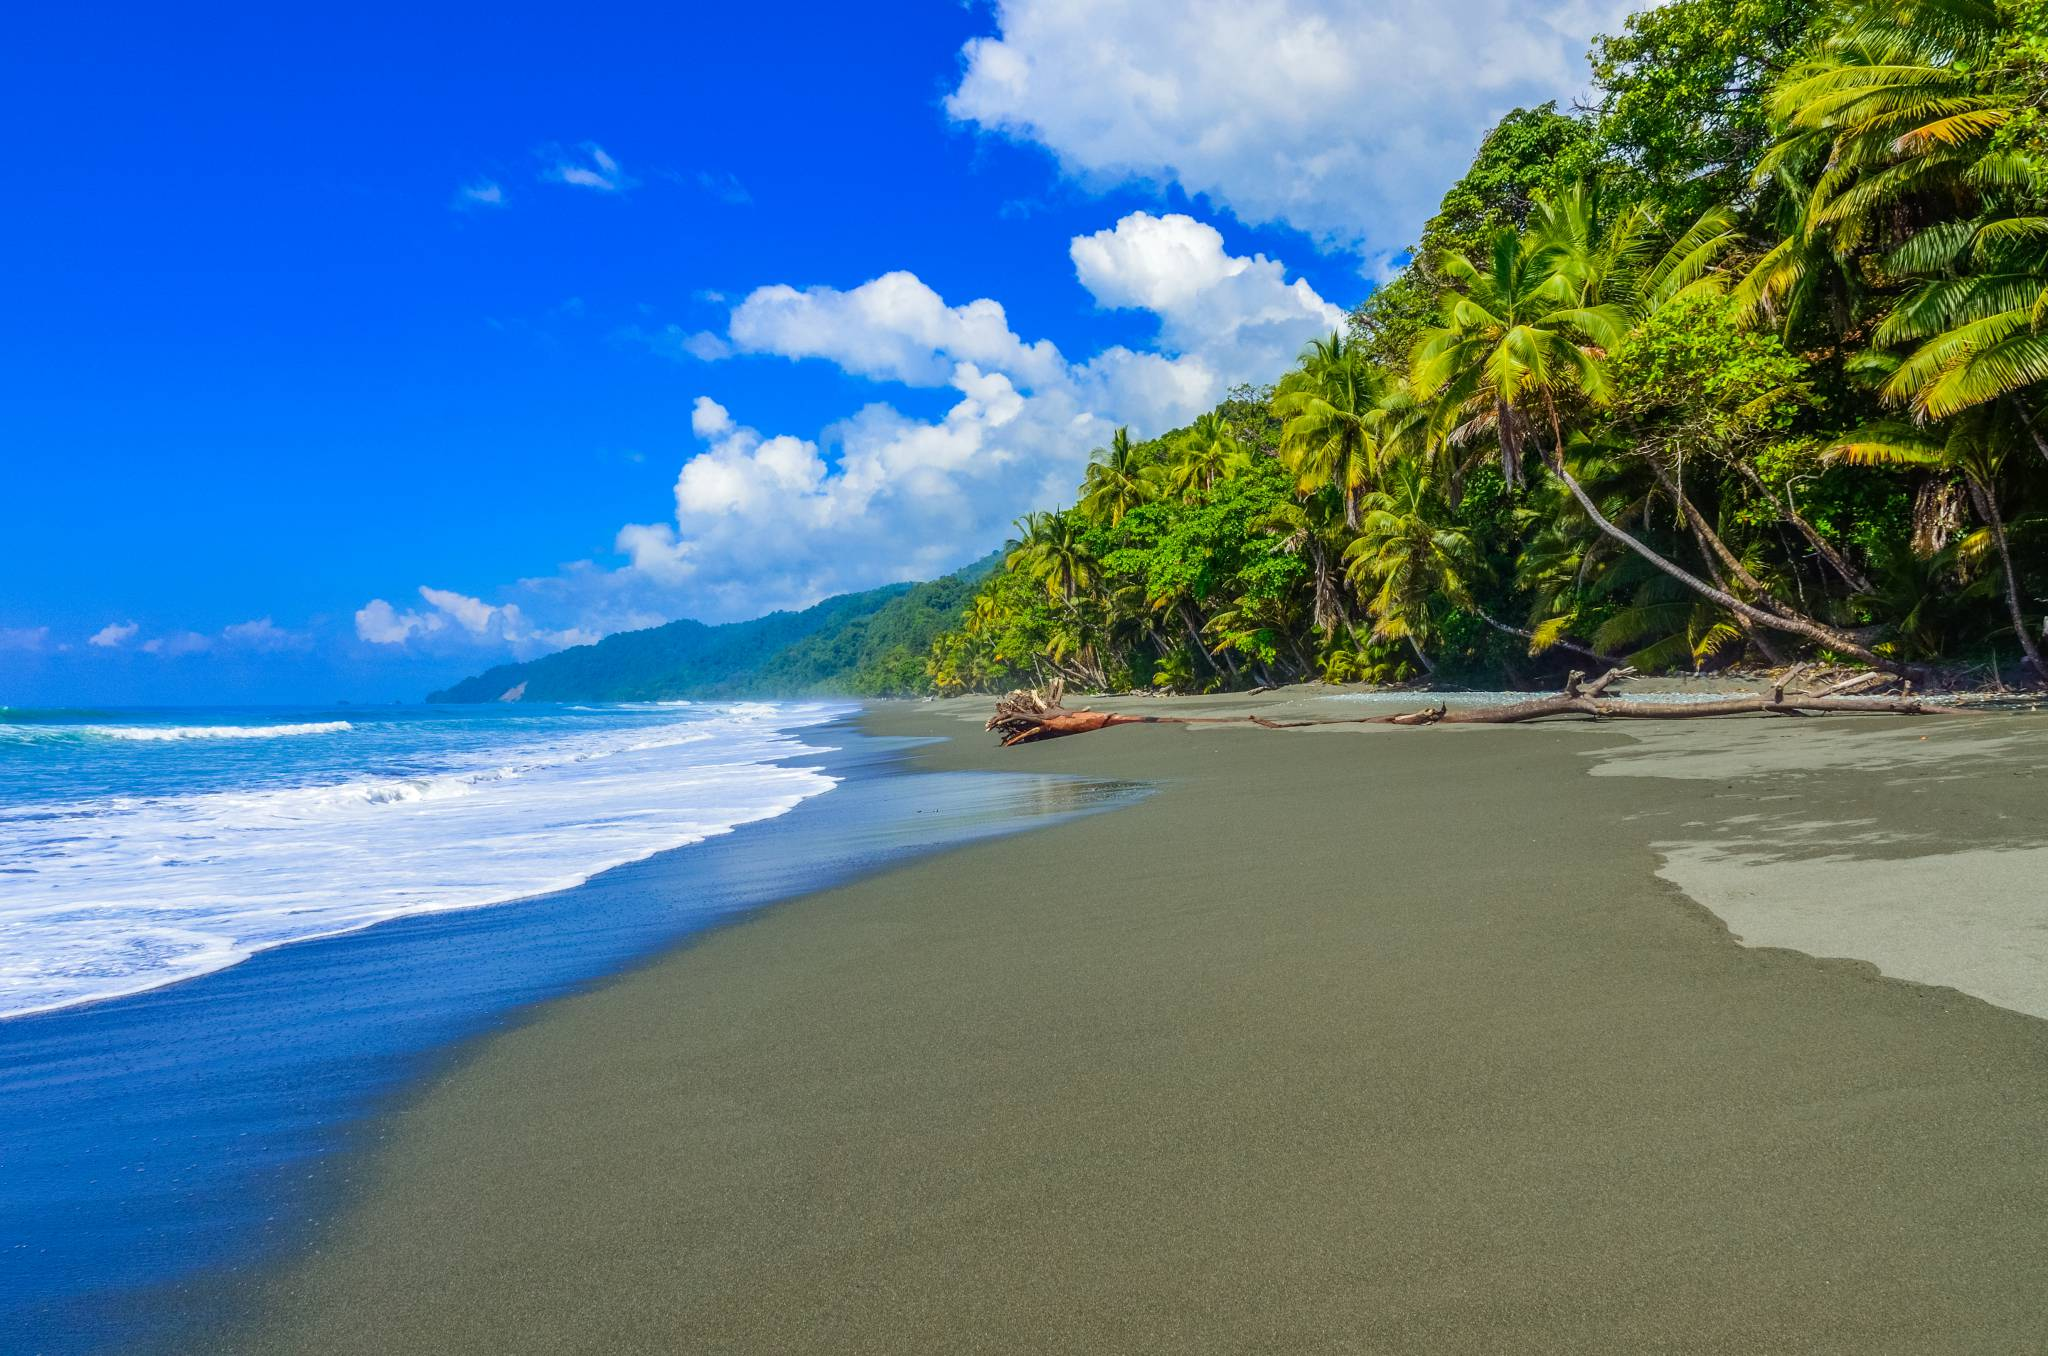 Travel to Costa Rica with eTips Travel Guide